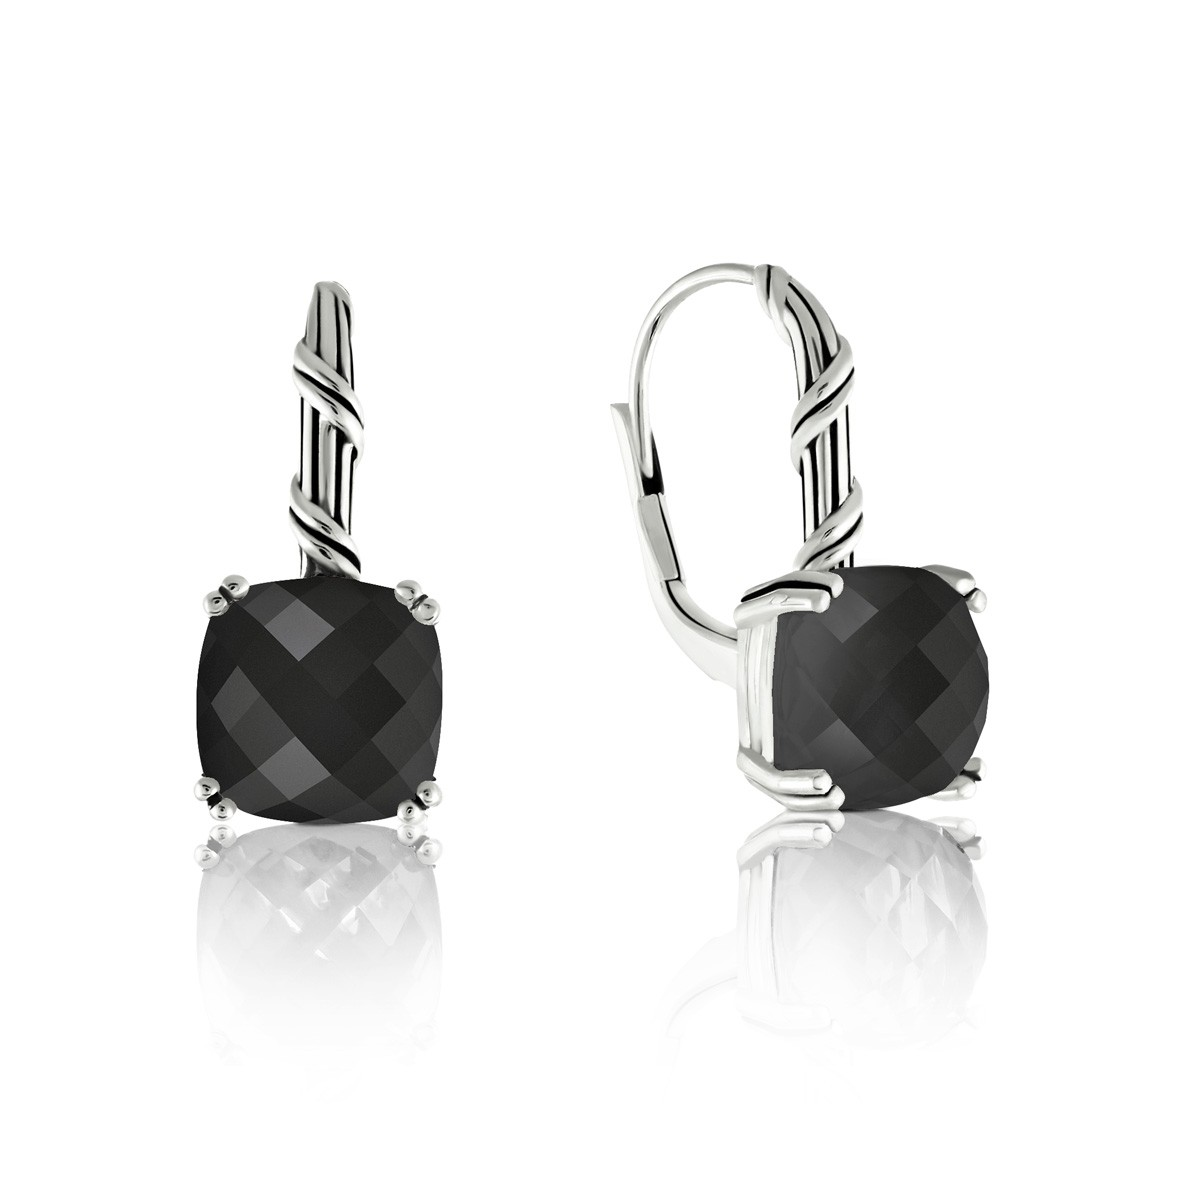 Fantasies Black Onyx Drop Earrings in sterling silver